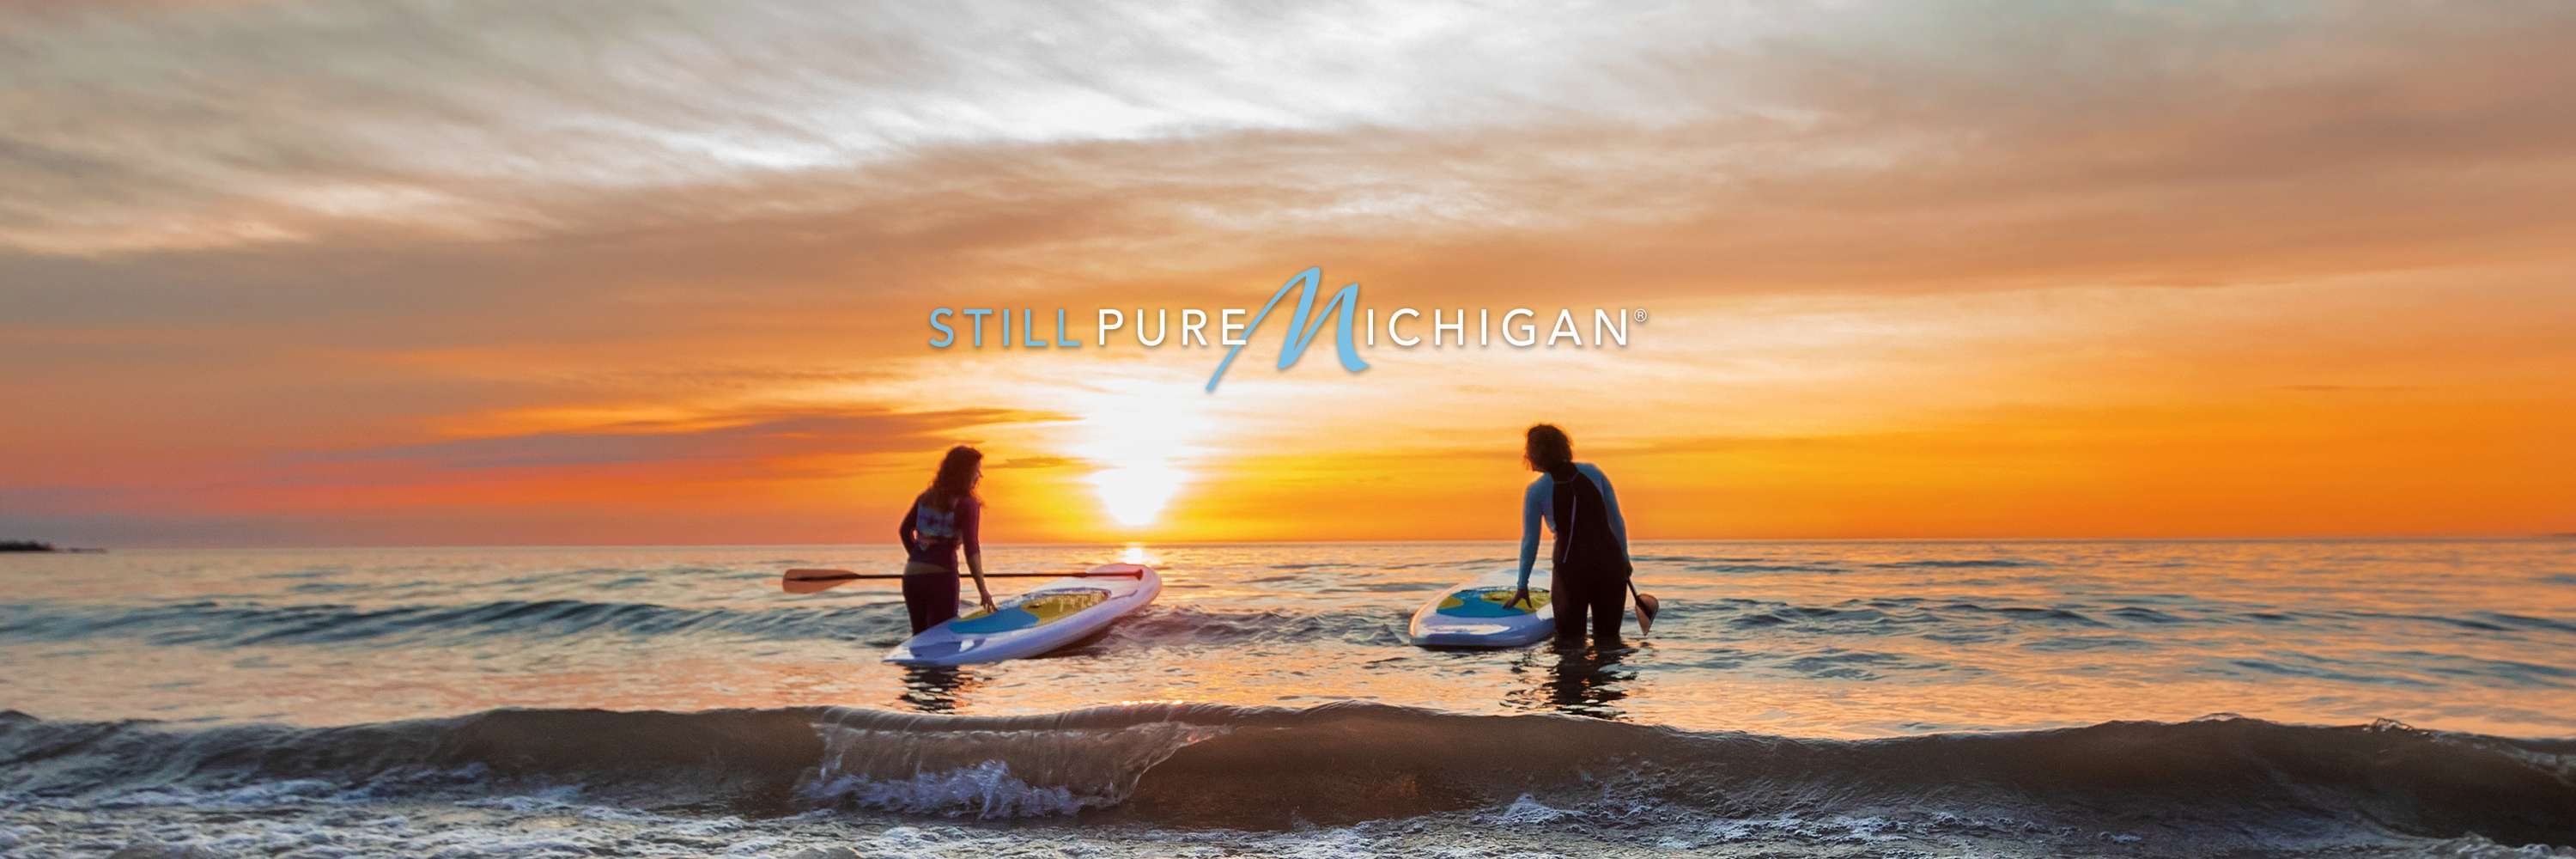 "Paddle boarders walking through Great Lakes waves with logo that reads ""Still Pure Michigan."""